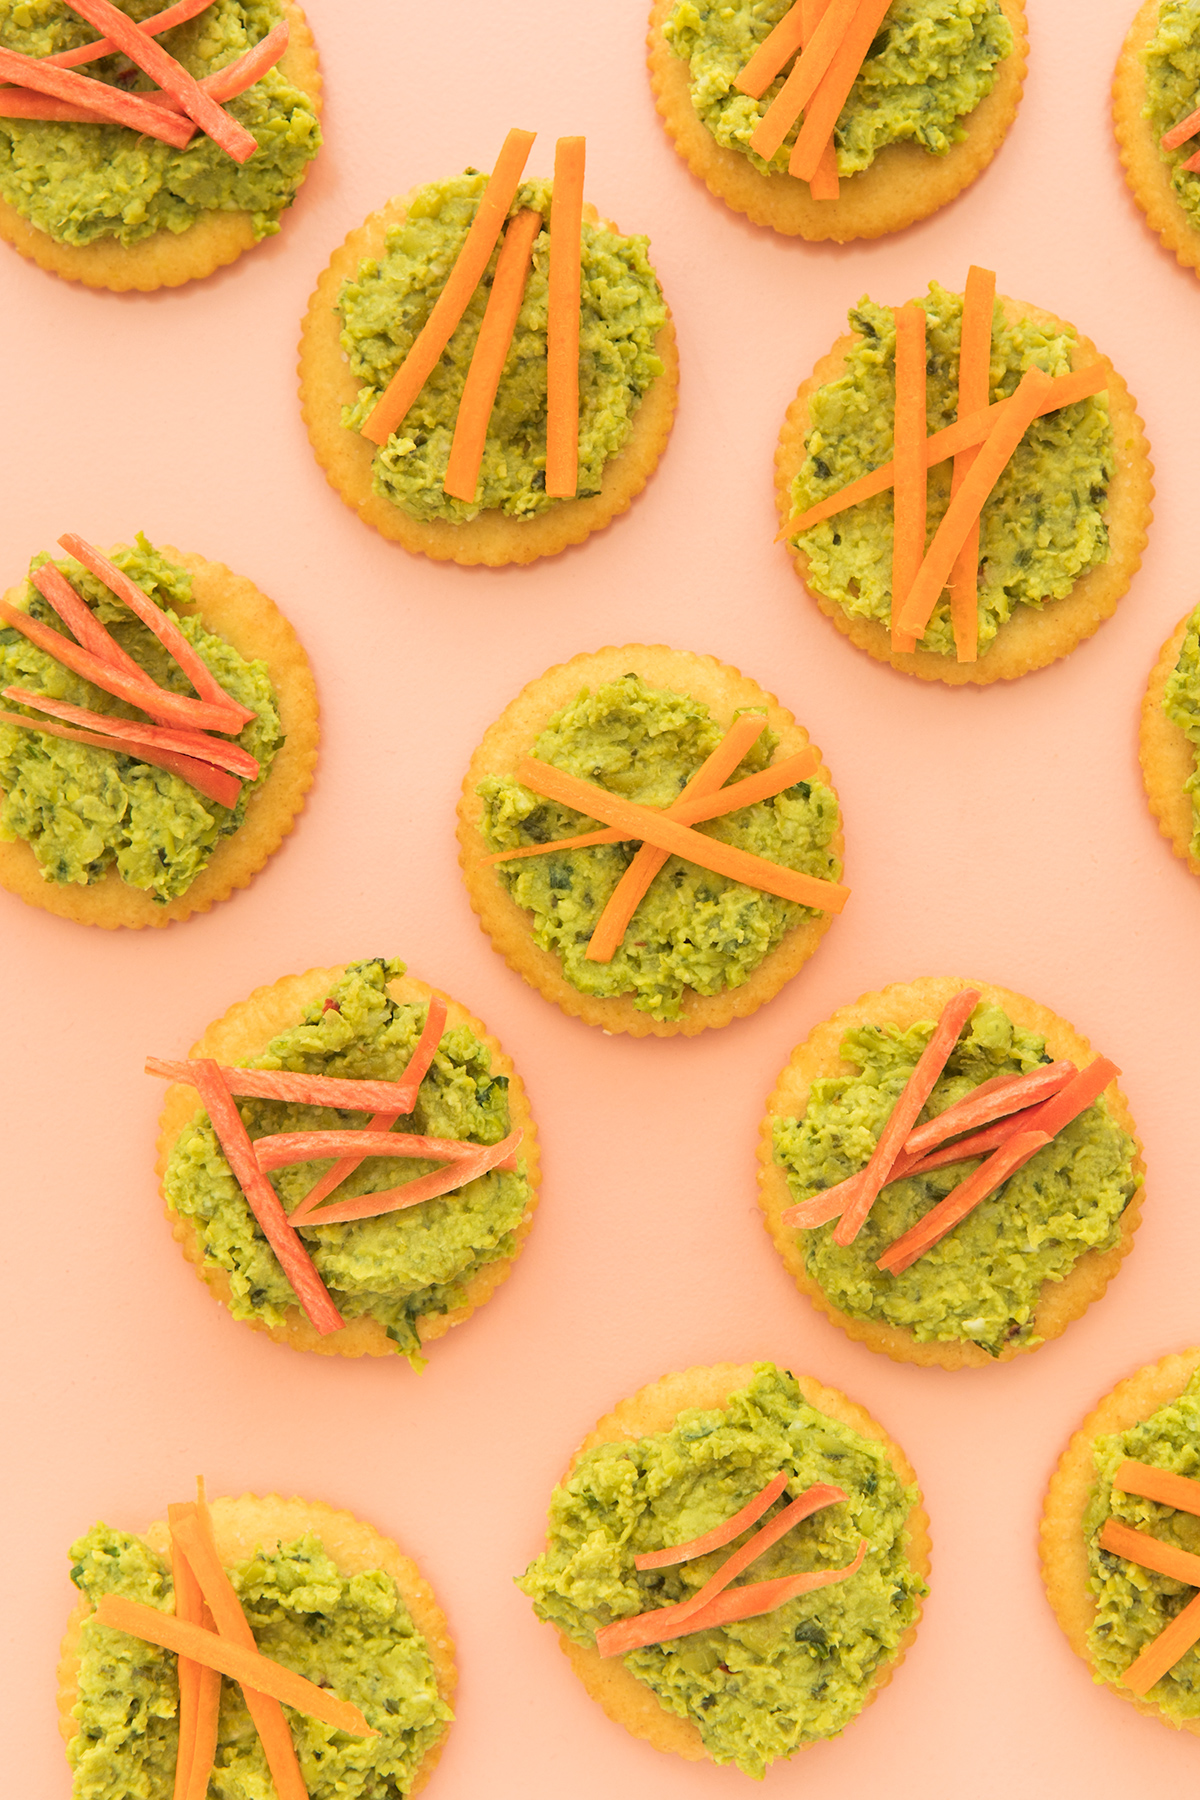 Celebrate Best Friends Day with this easy snack recipes based food BFFs peas and carrots!